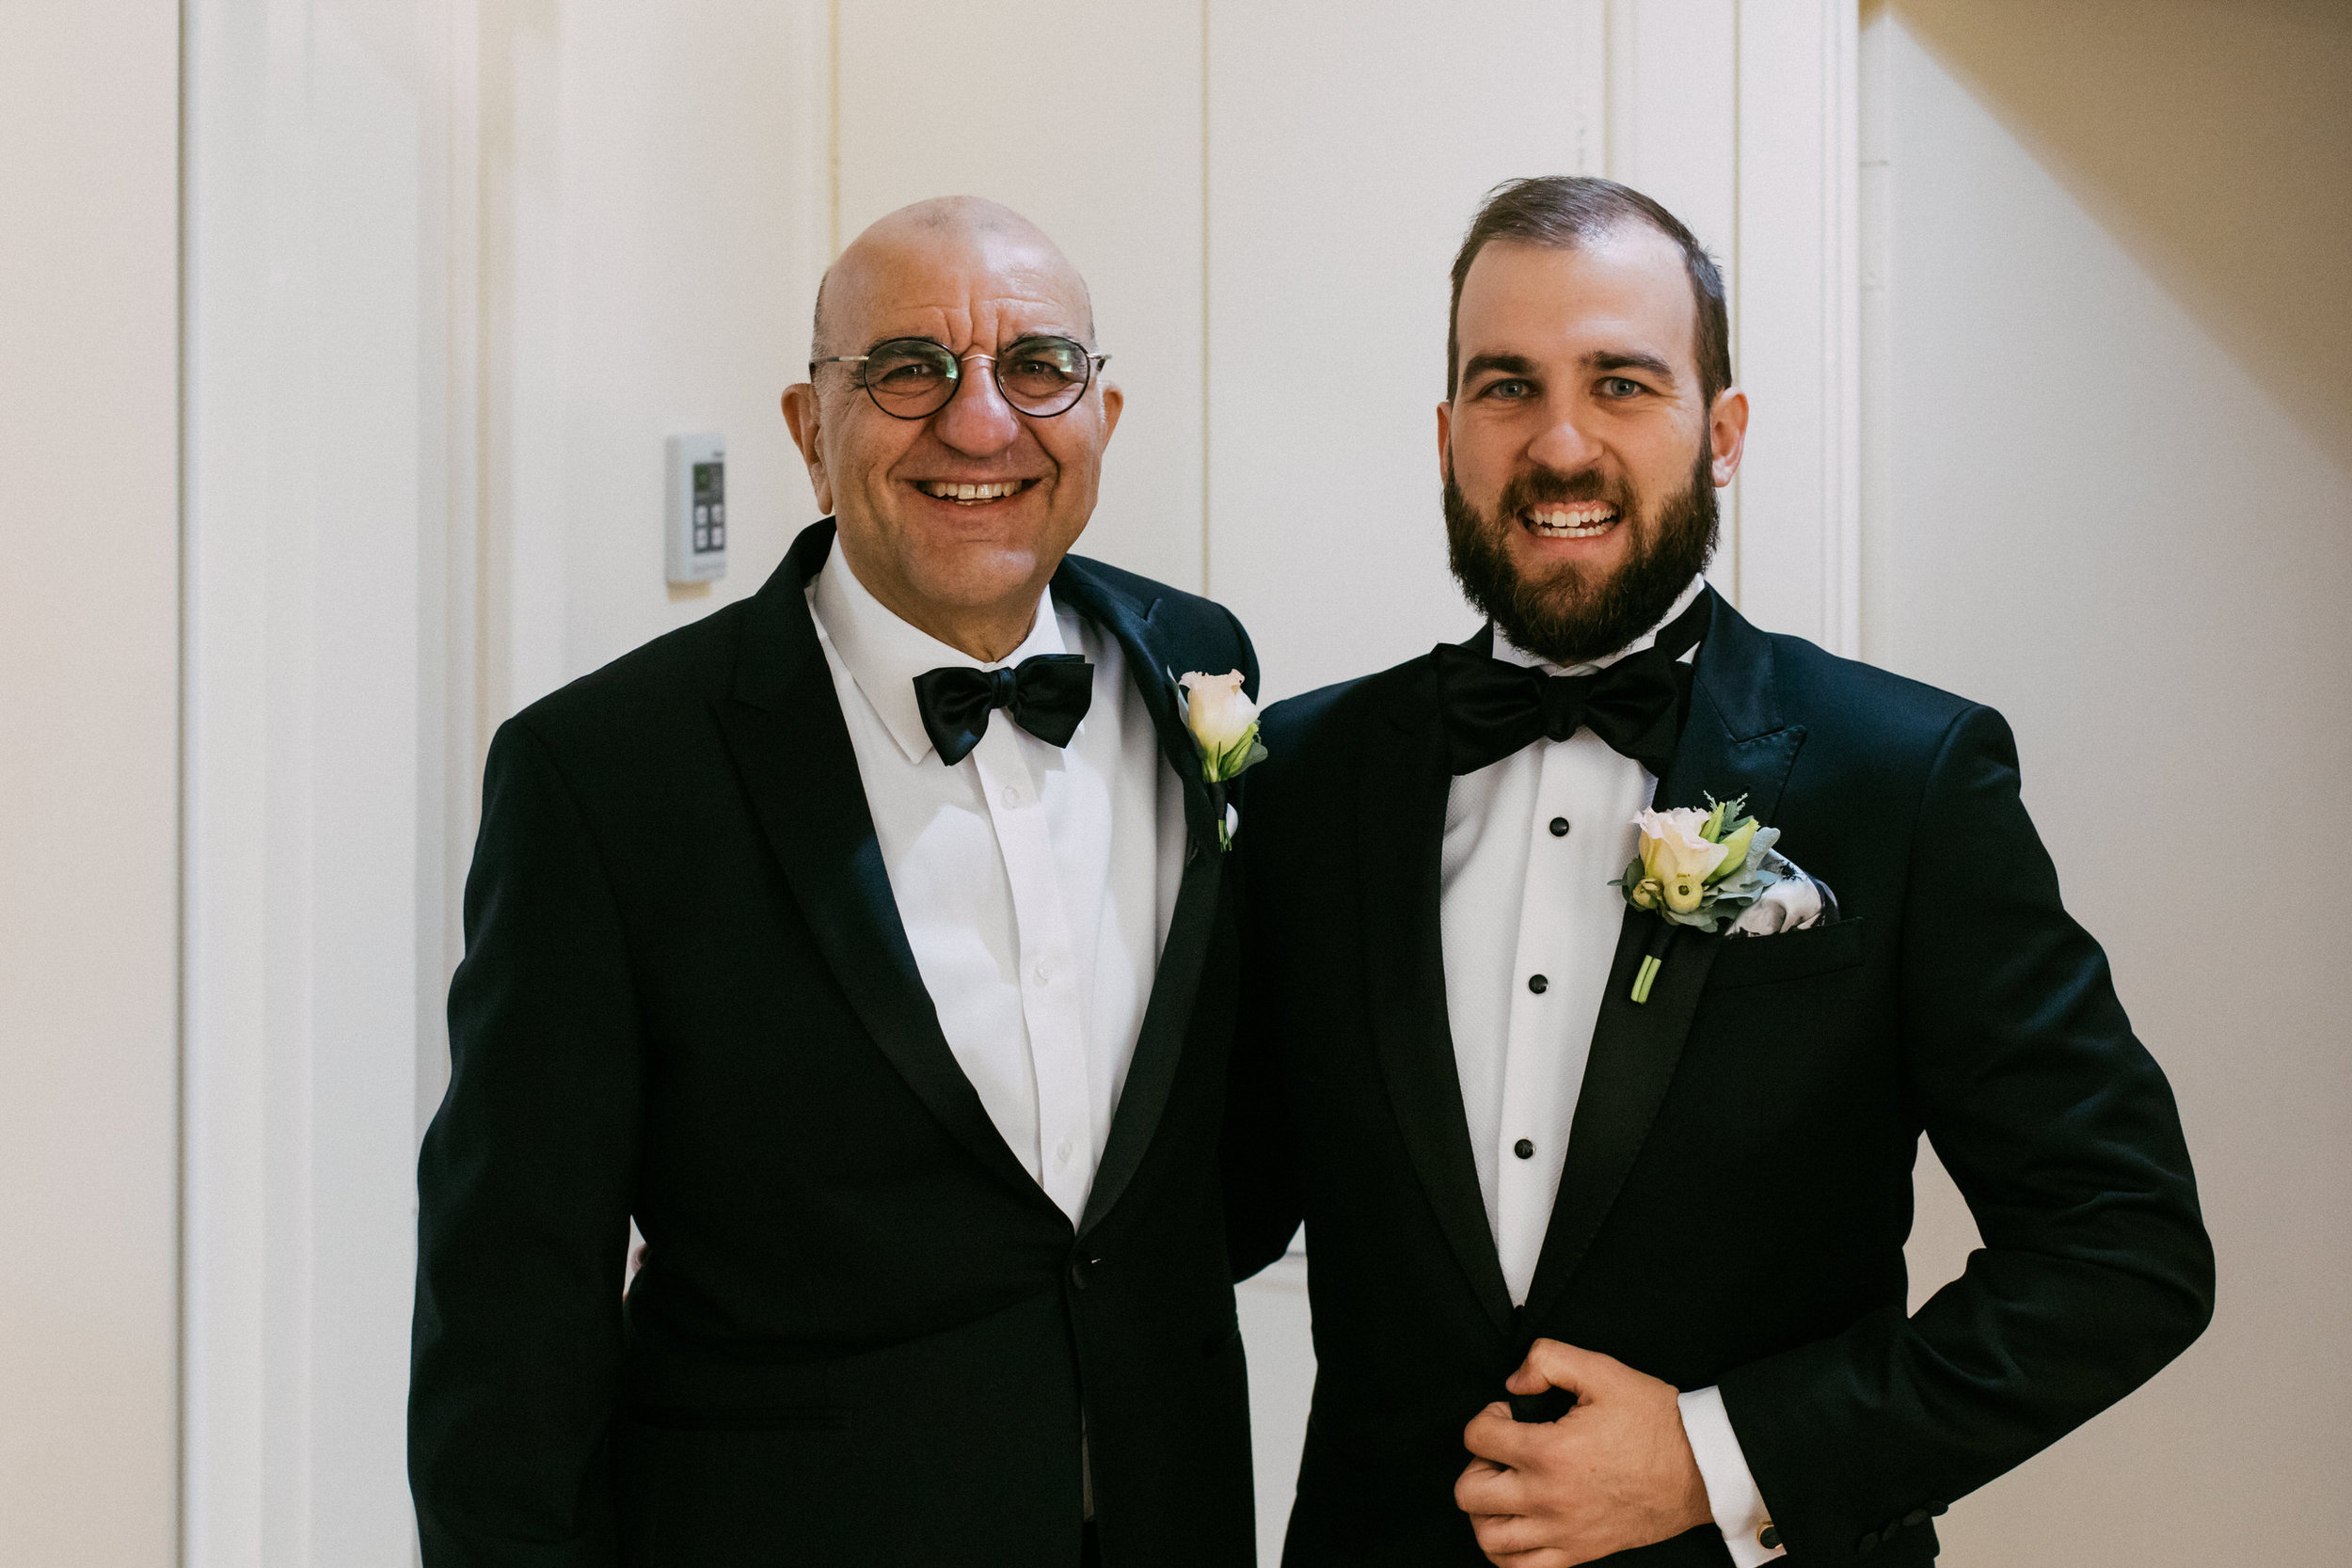 Adelaide Wedding 2019 005.jpg